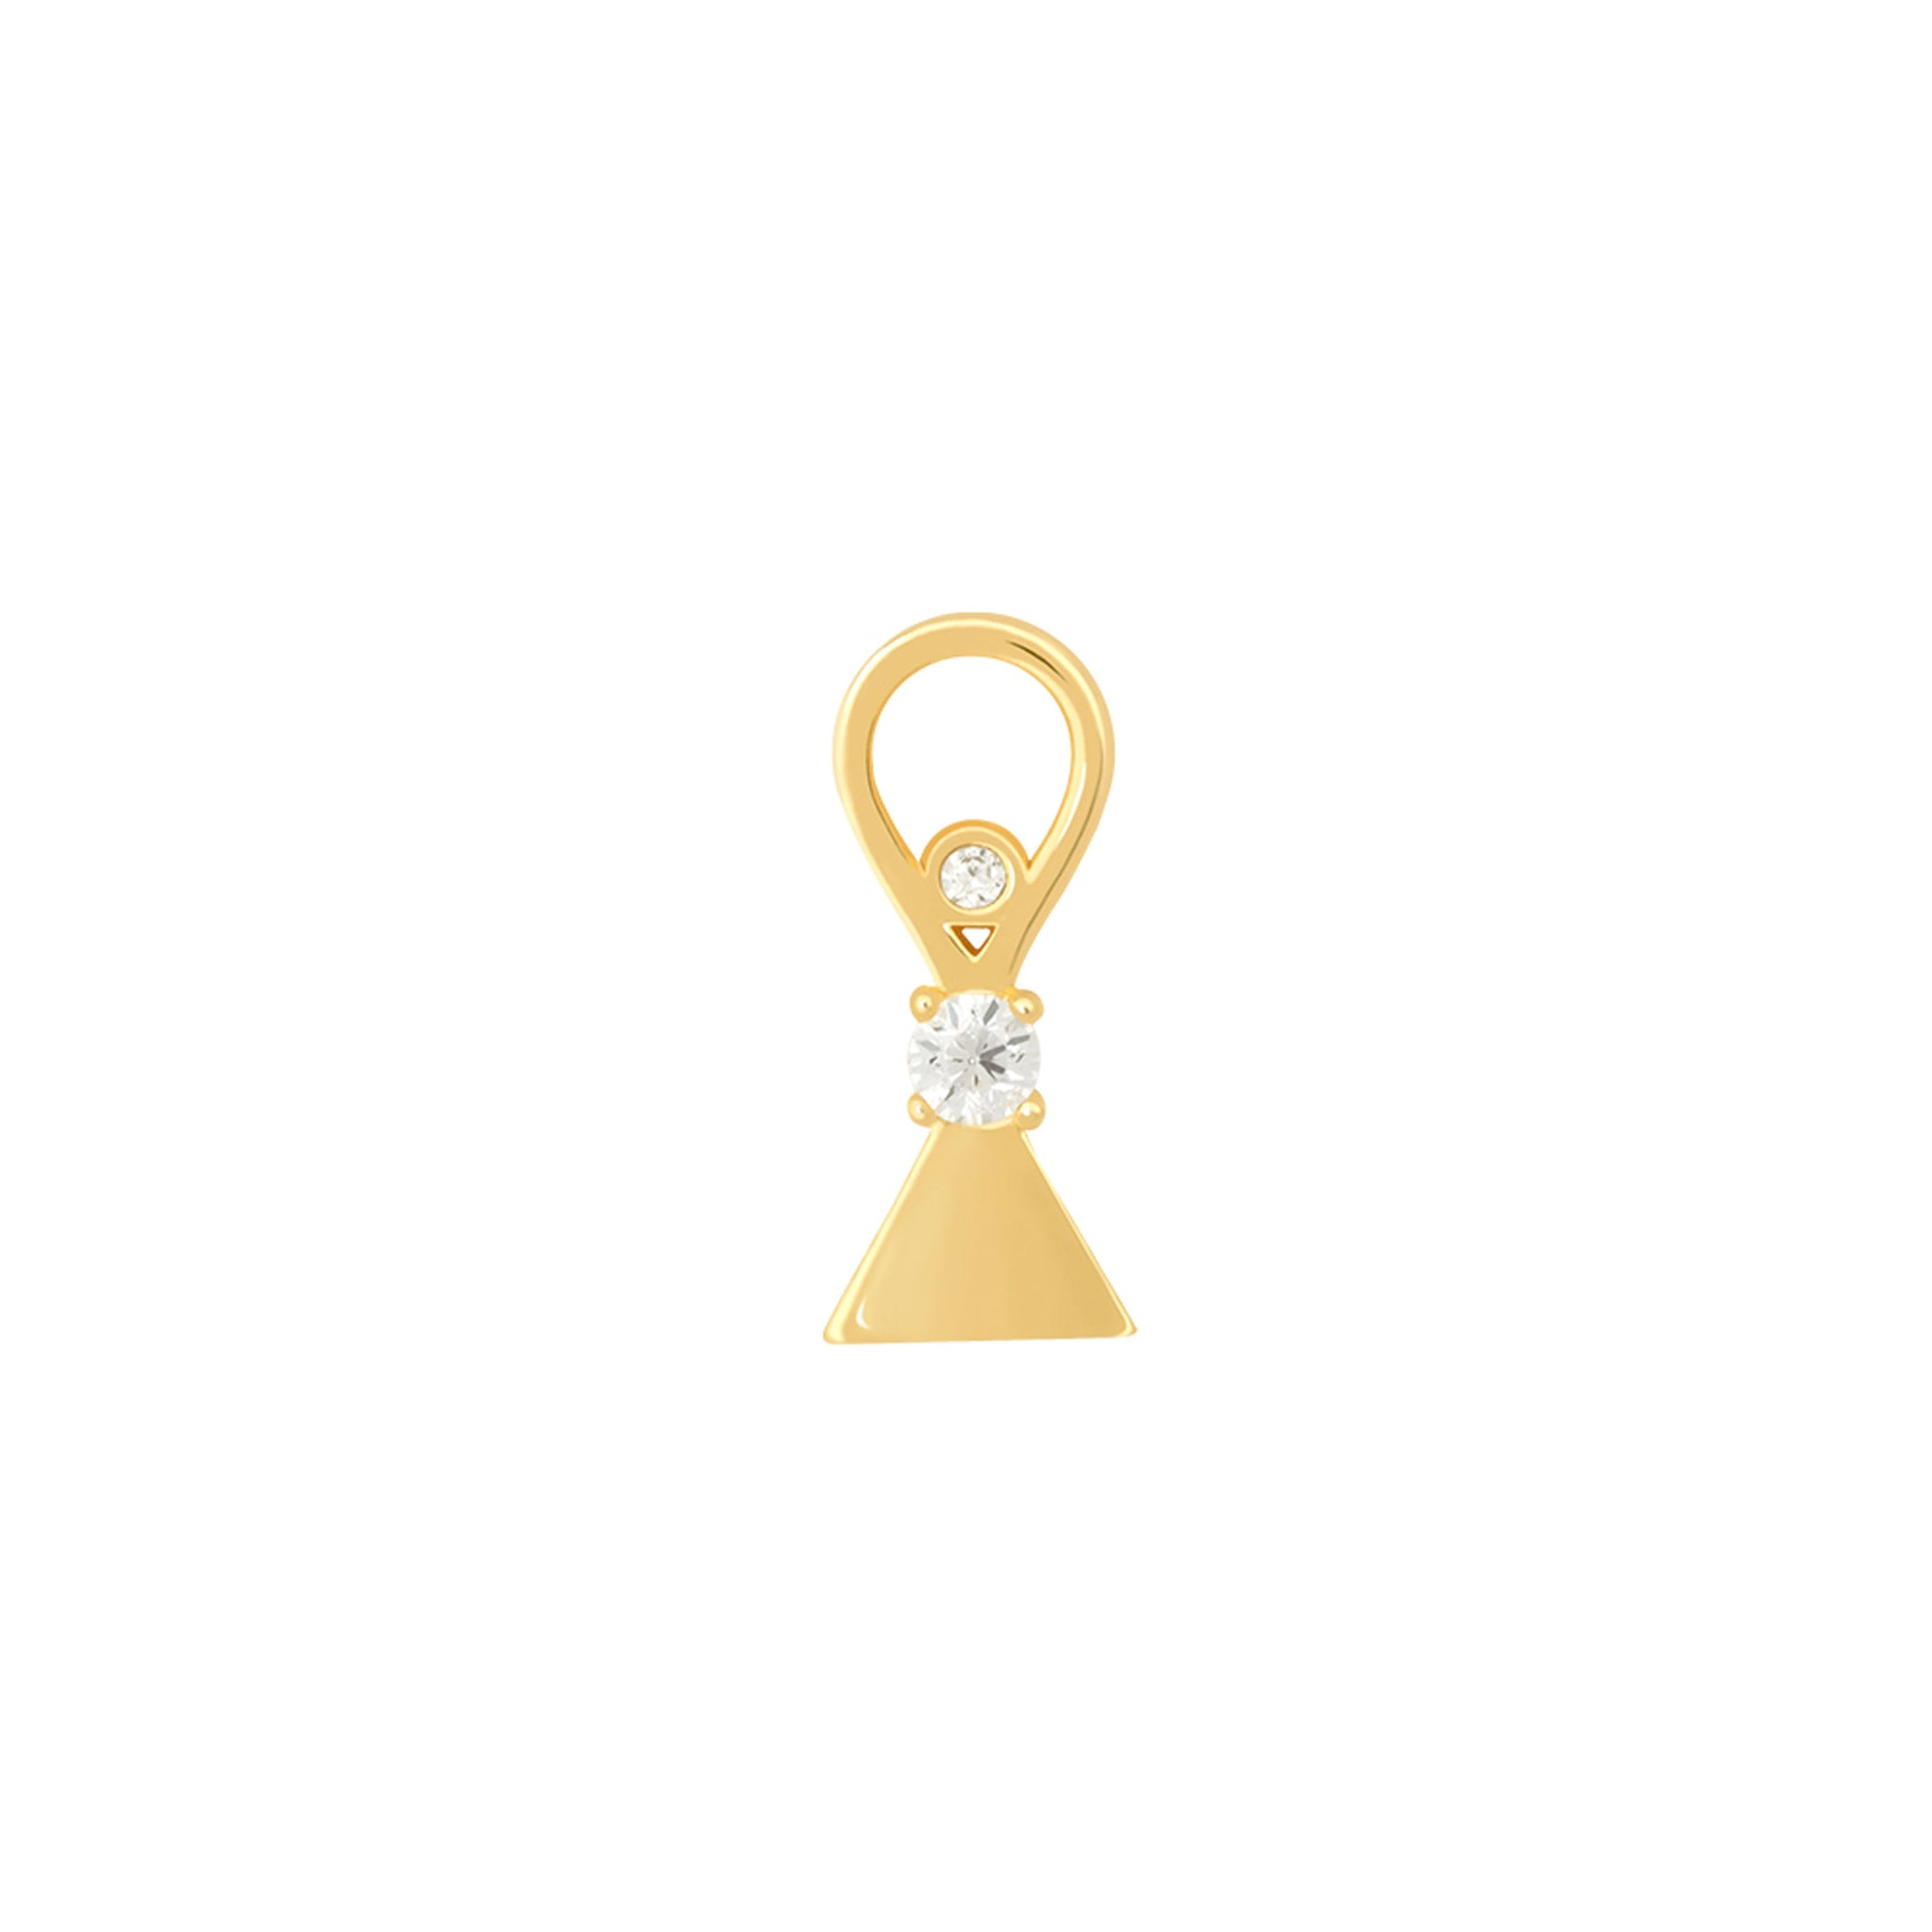 Triangle & Stones Earring Charm in Gold